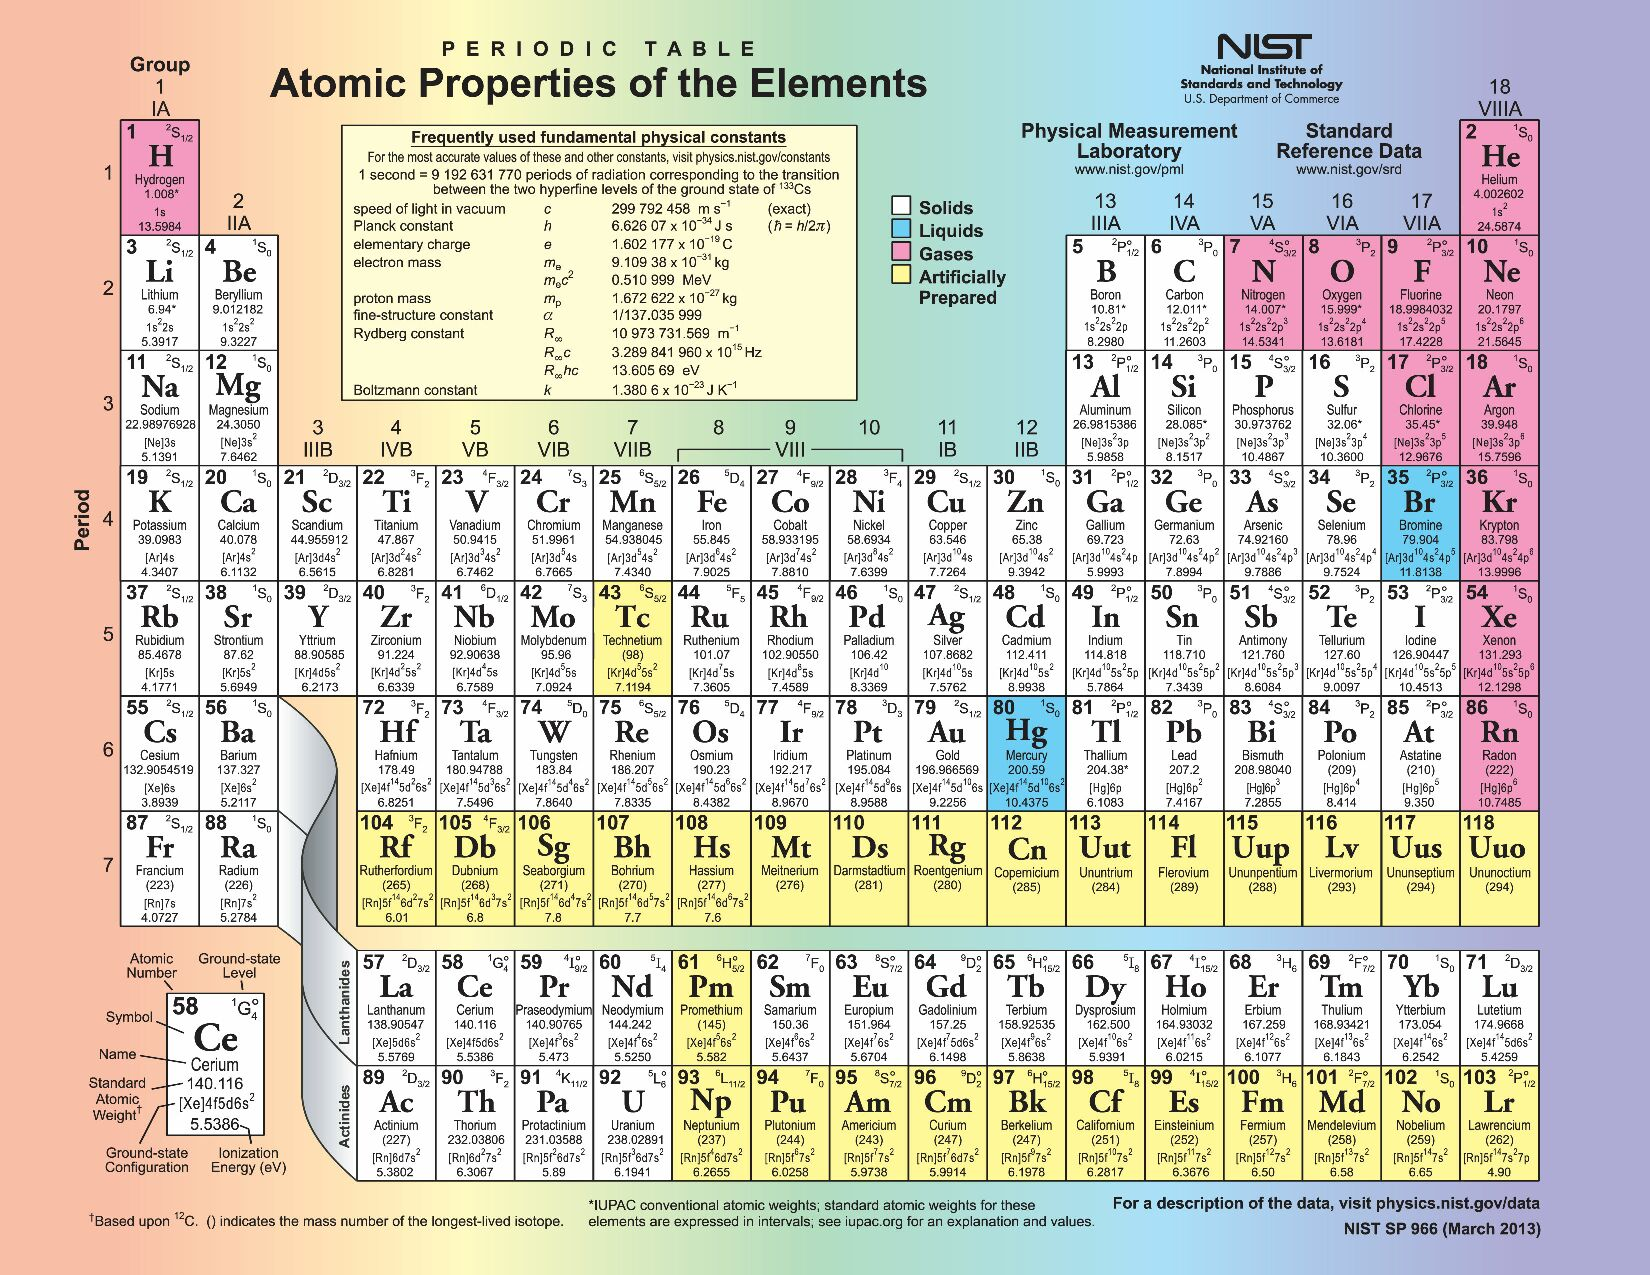 Periodic tables of the elements in american englishmichael canov amer6g gamestrikefo Choice Image